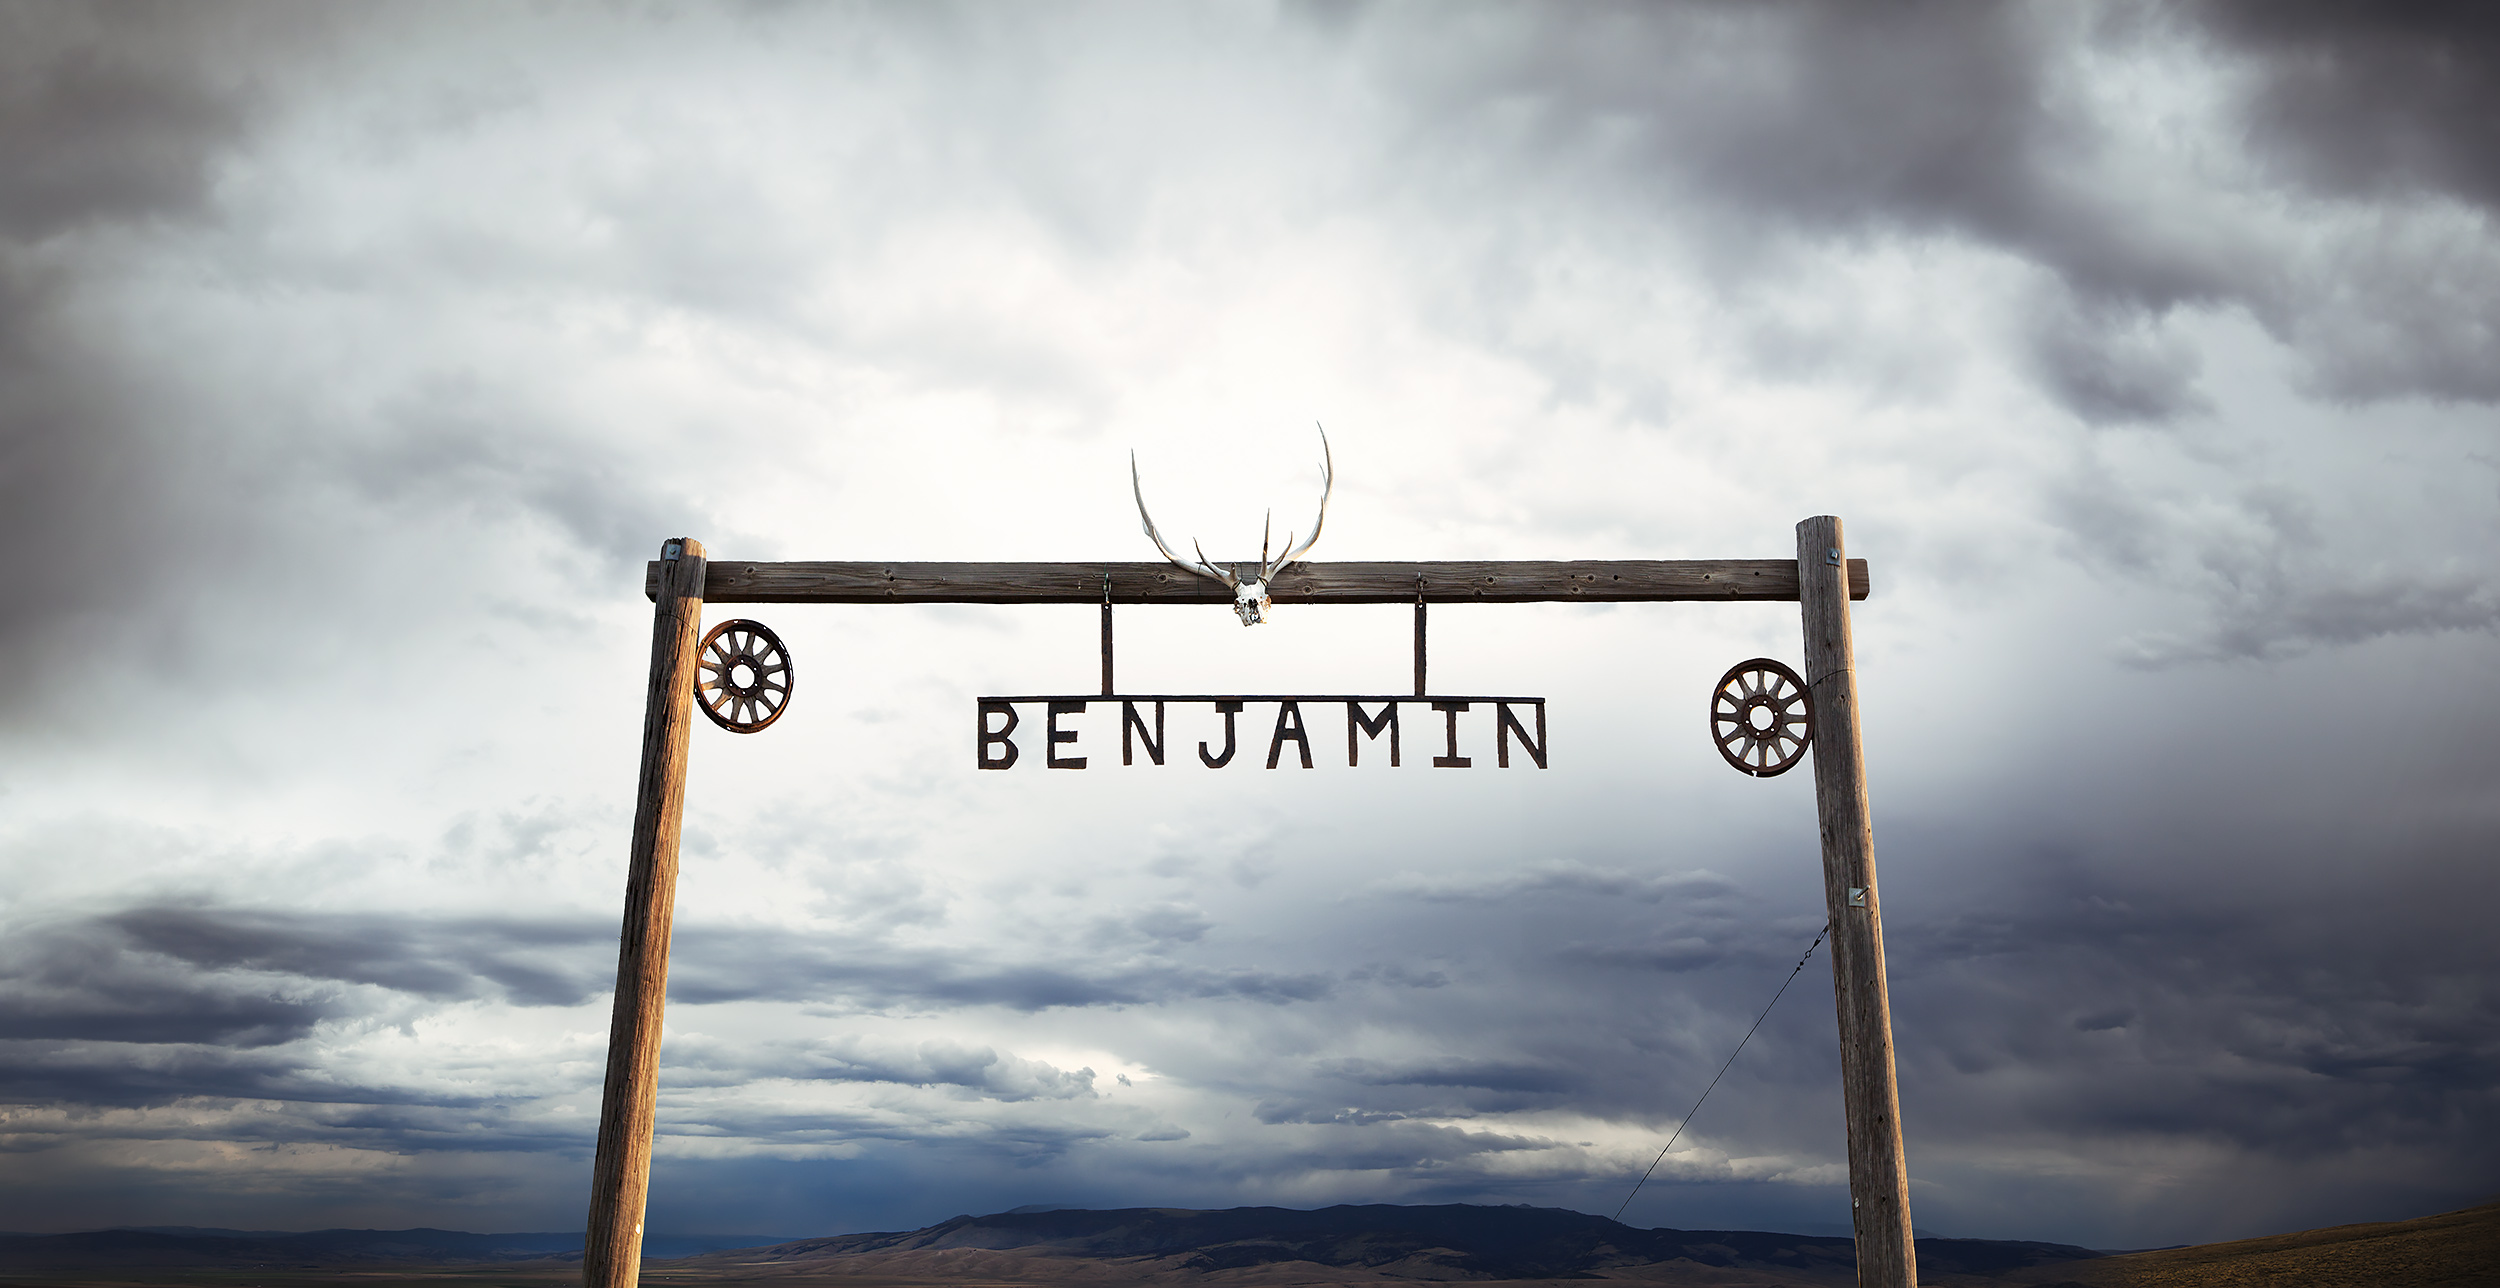 The entrance to the Benjamin Ranch in Montana